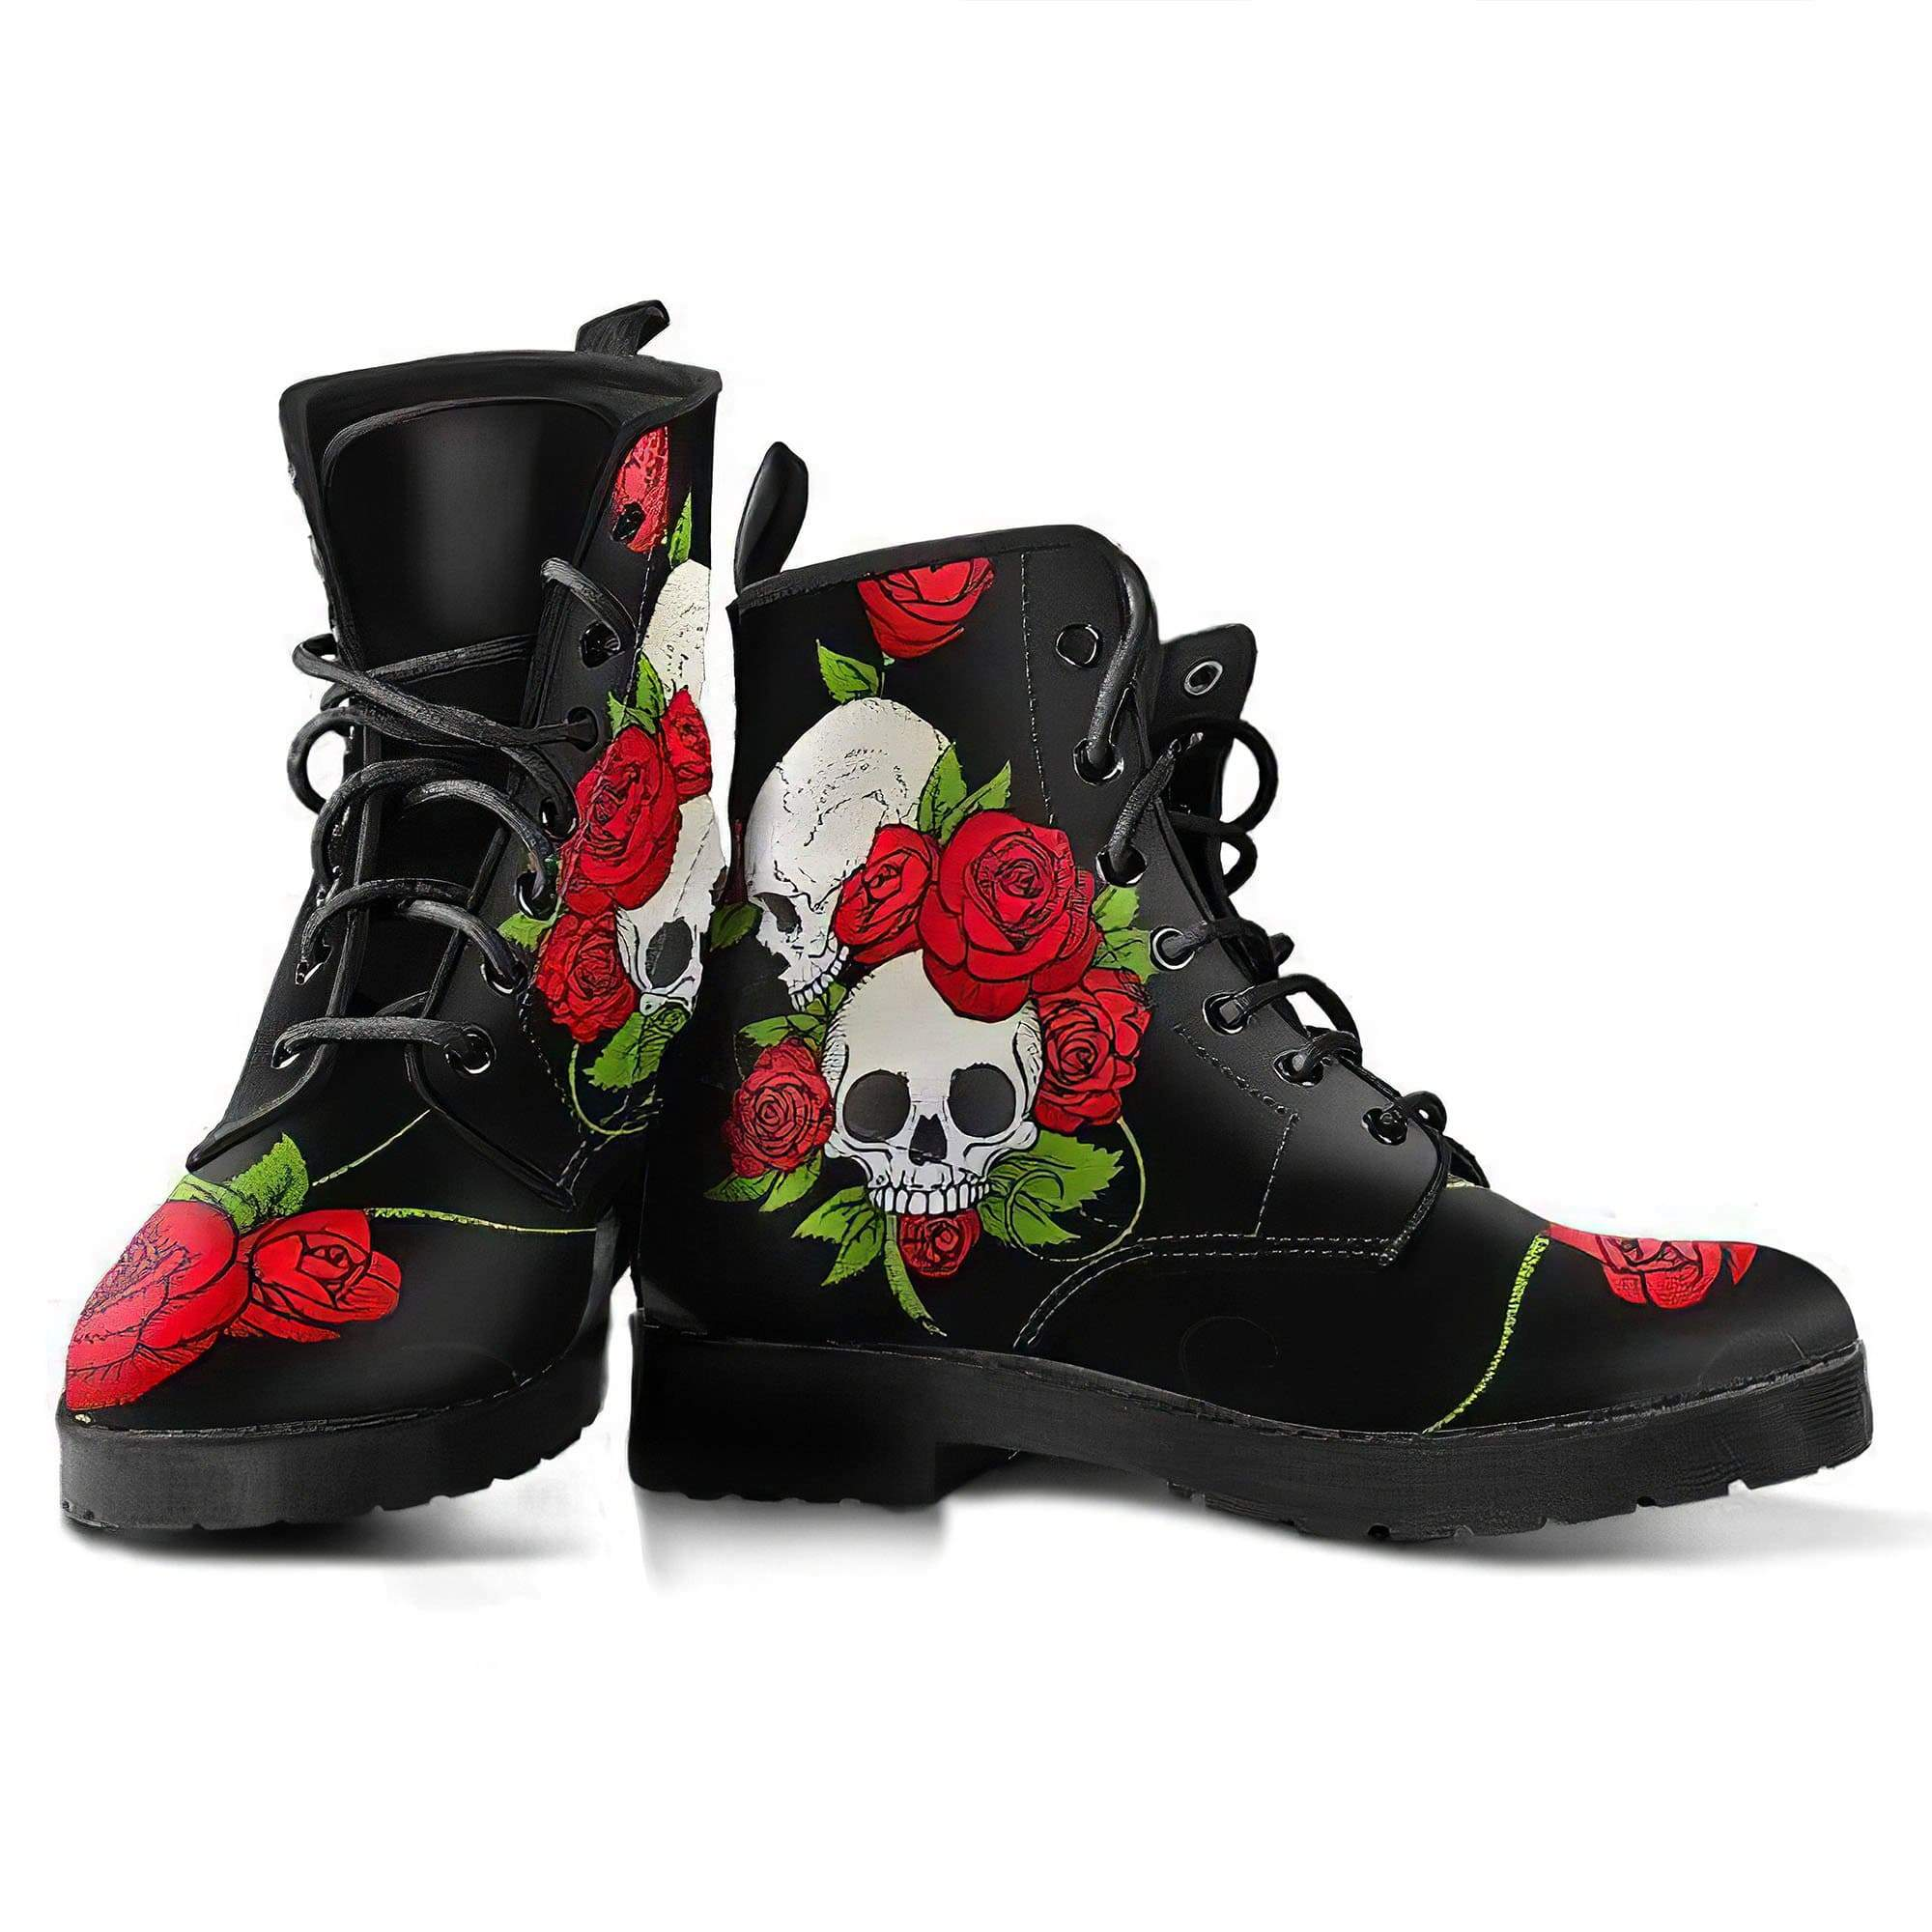 Skull & Roses Women's Boots Vegan Friendly Leather Women's Leather Boots